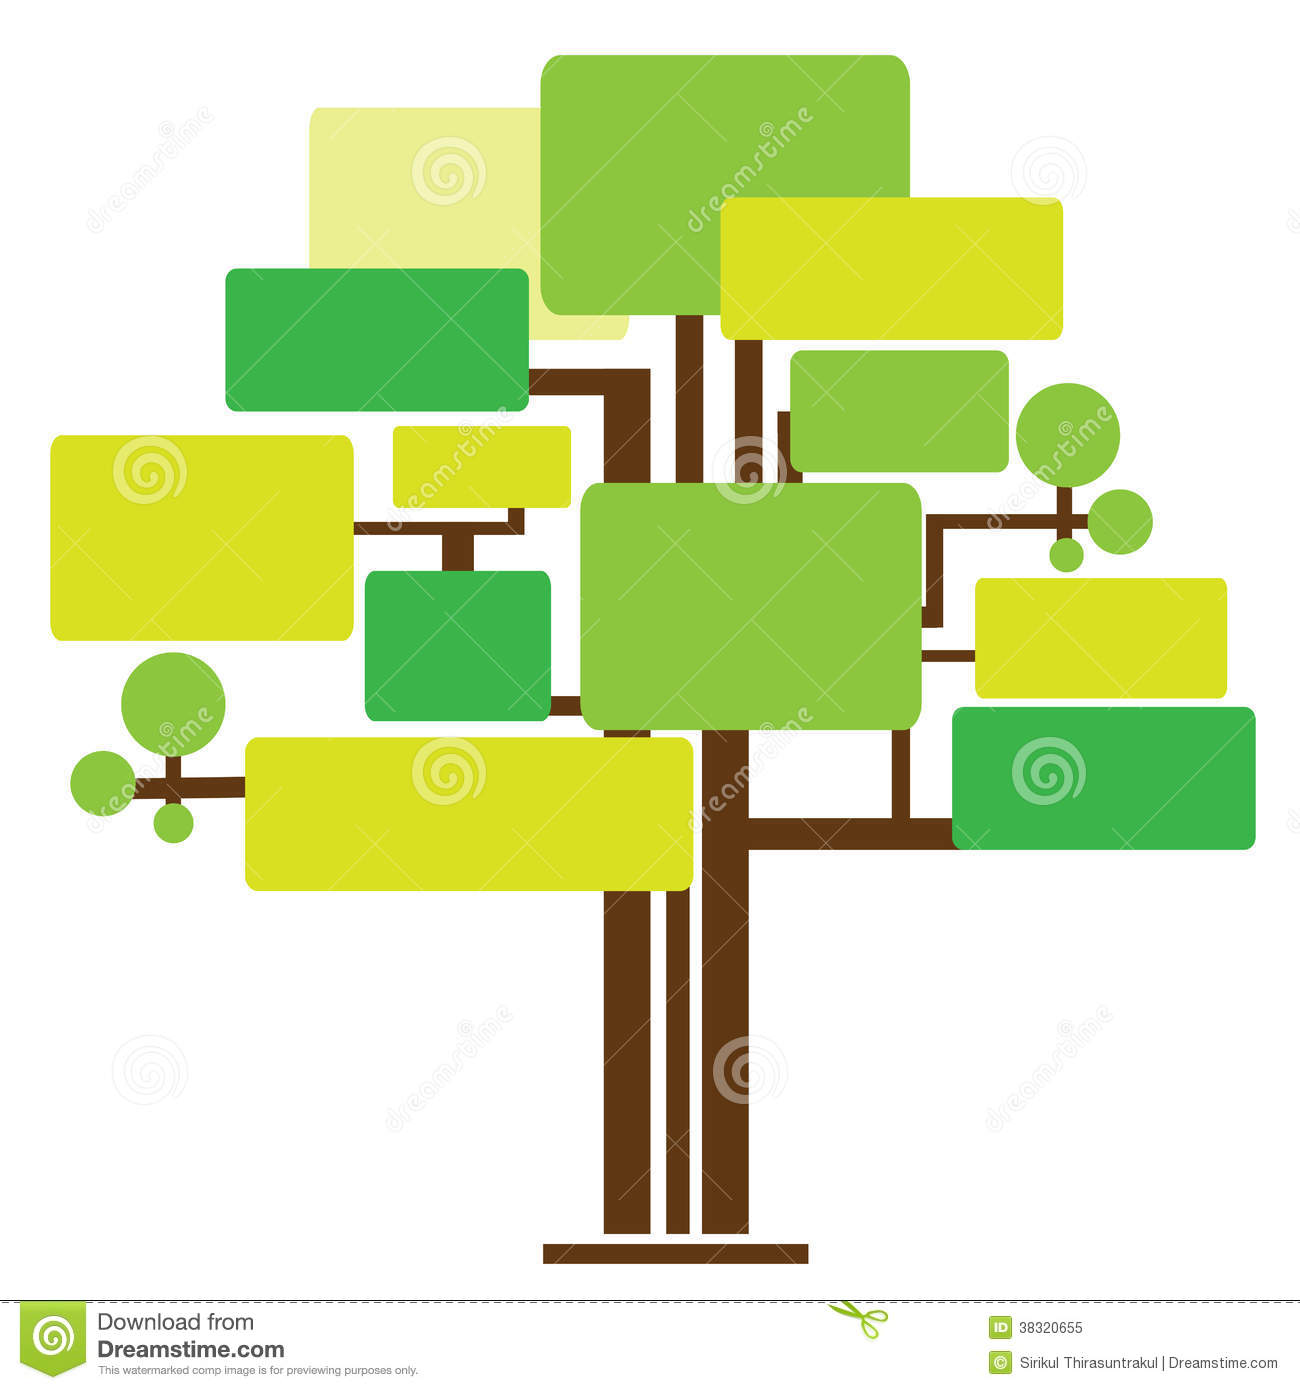 Illustrationn of tree template stock illustration illustration of illustrationn of tree template stock illustration illustration of illustration concept 38320655 cheaphphosting Image collections